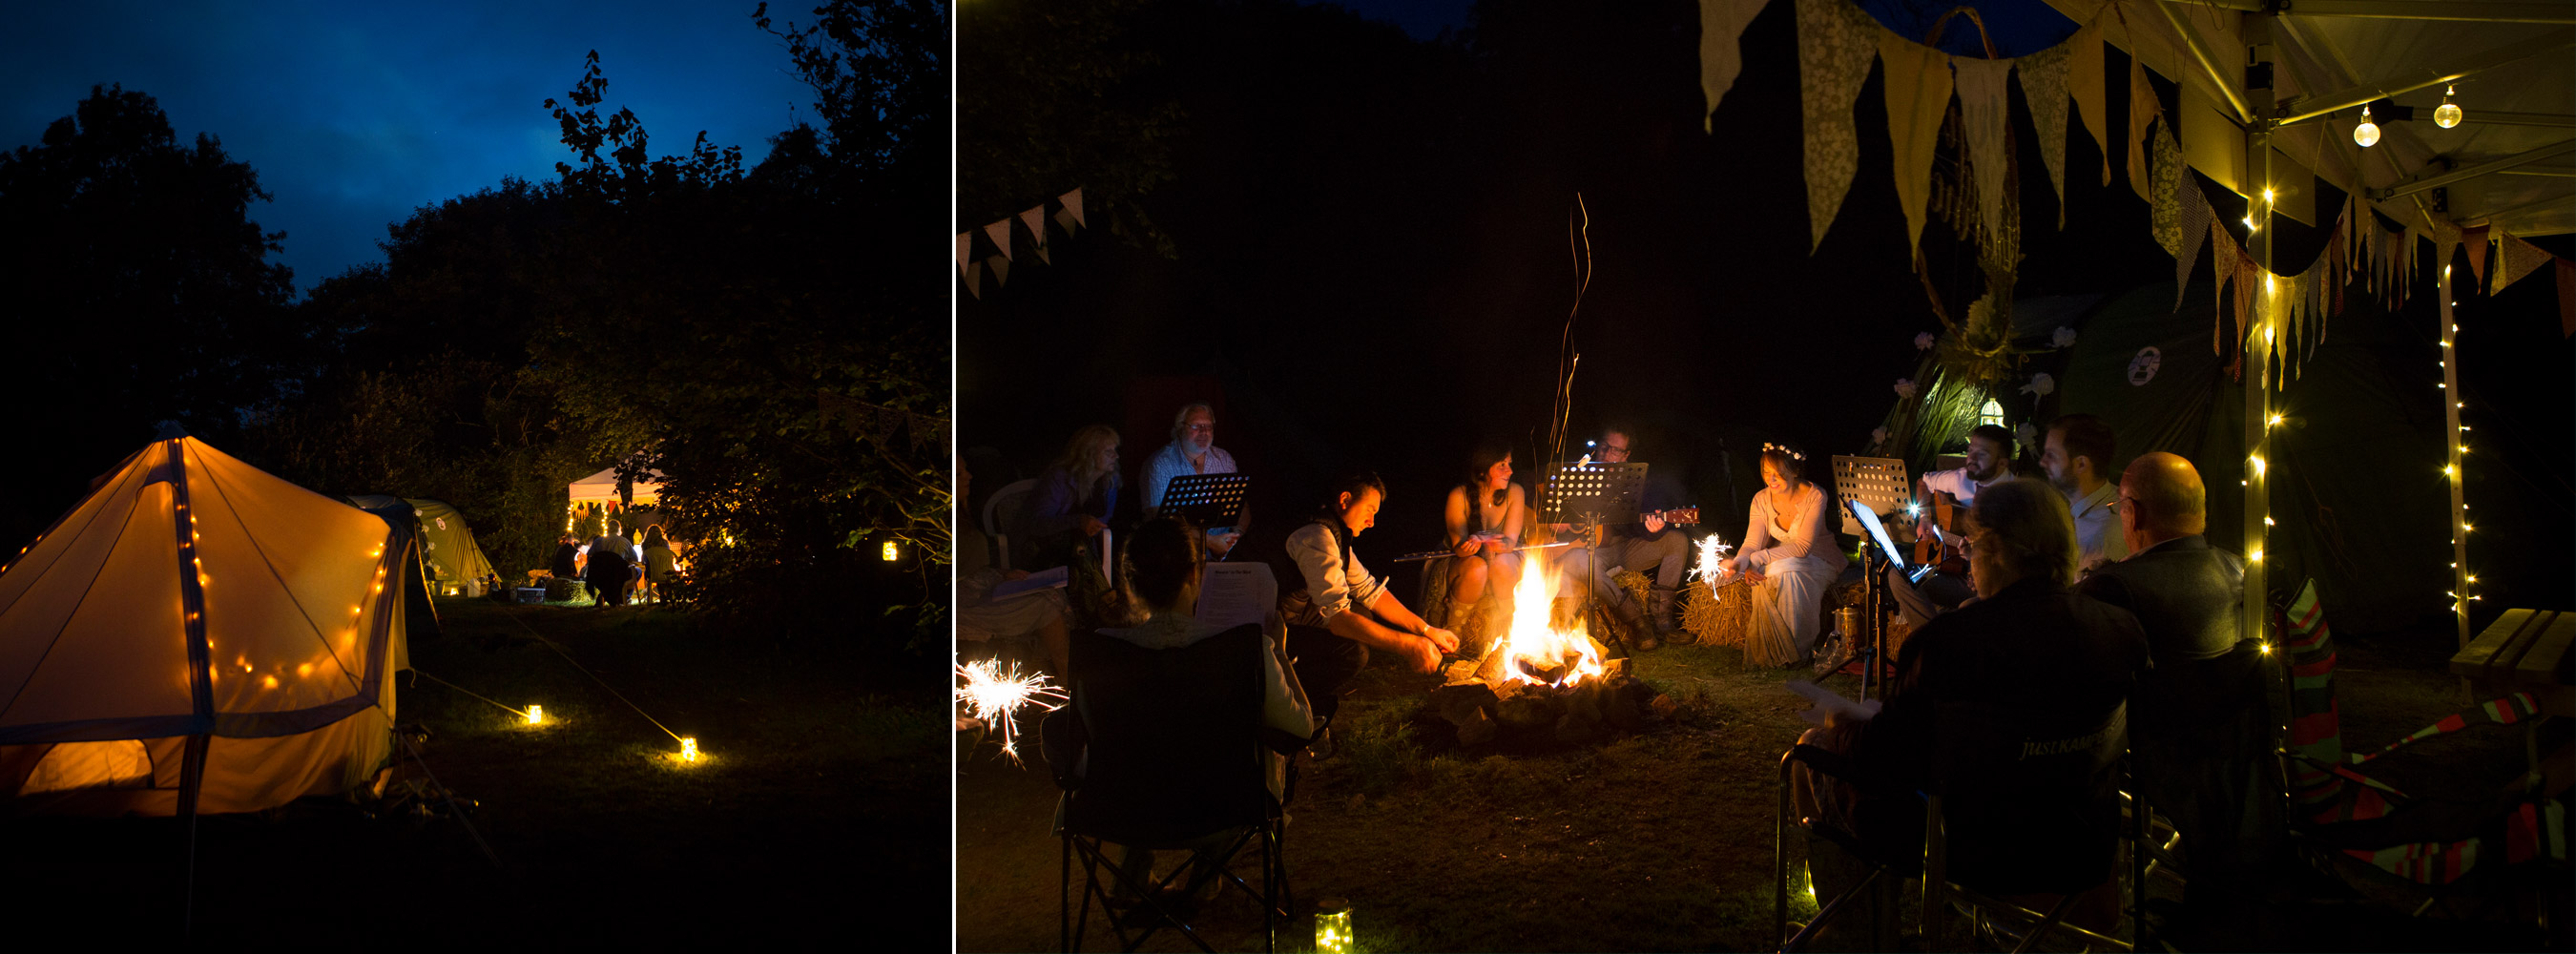 Nightime with Campfire Tents